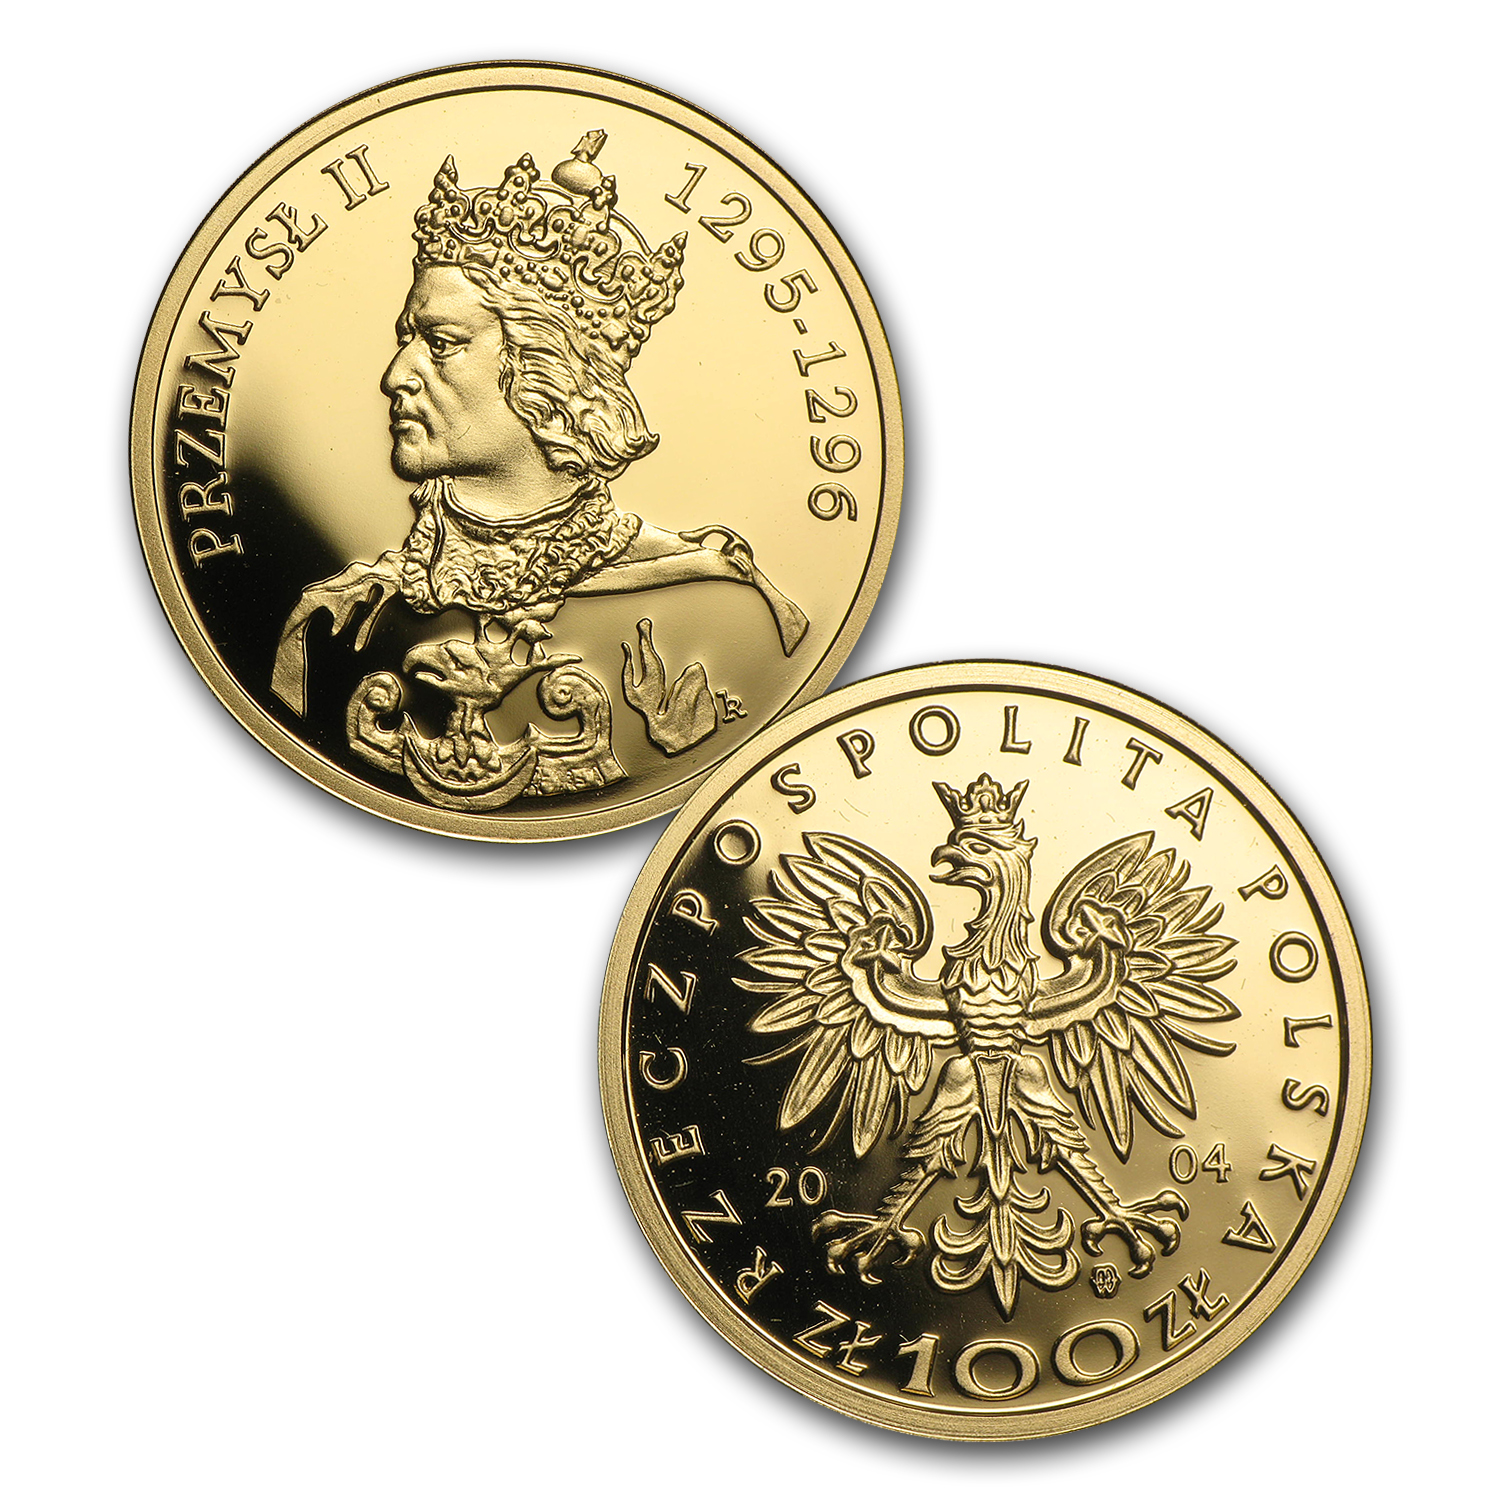 2004 Poland Proof Gold 100 Zlotych Polish Kings